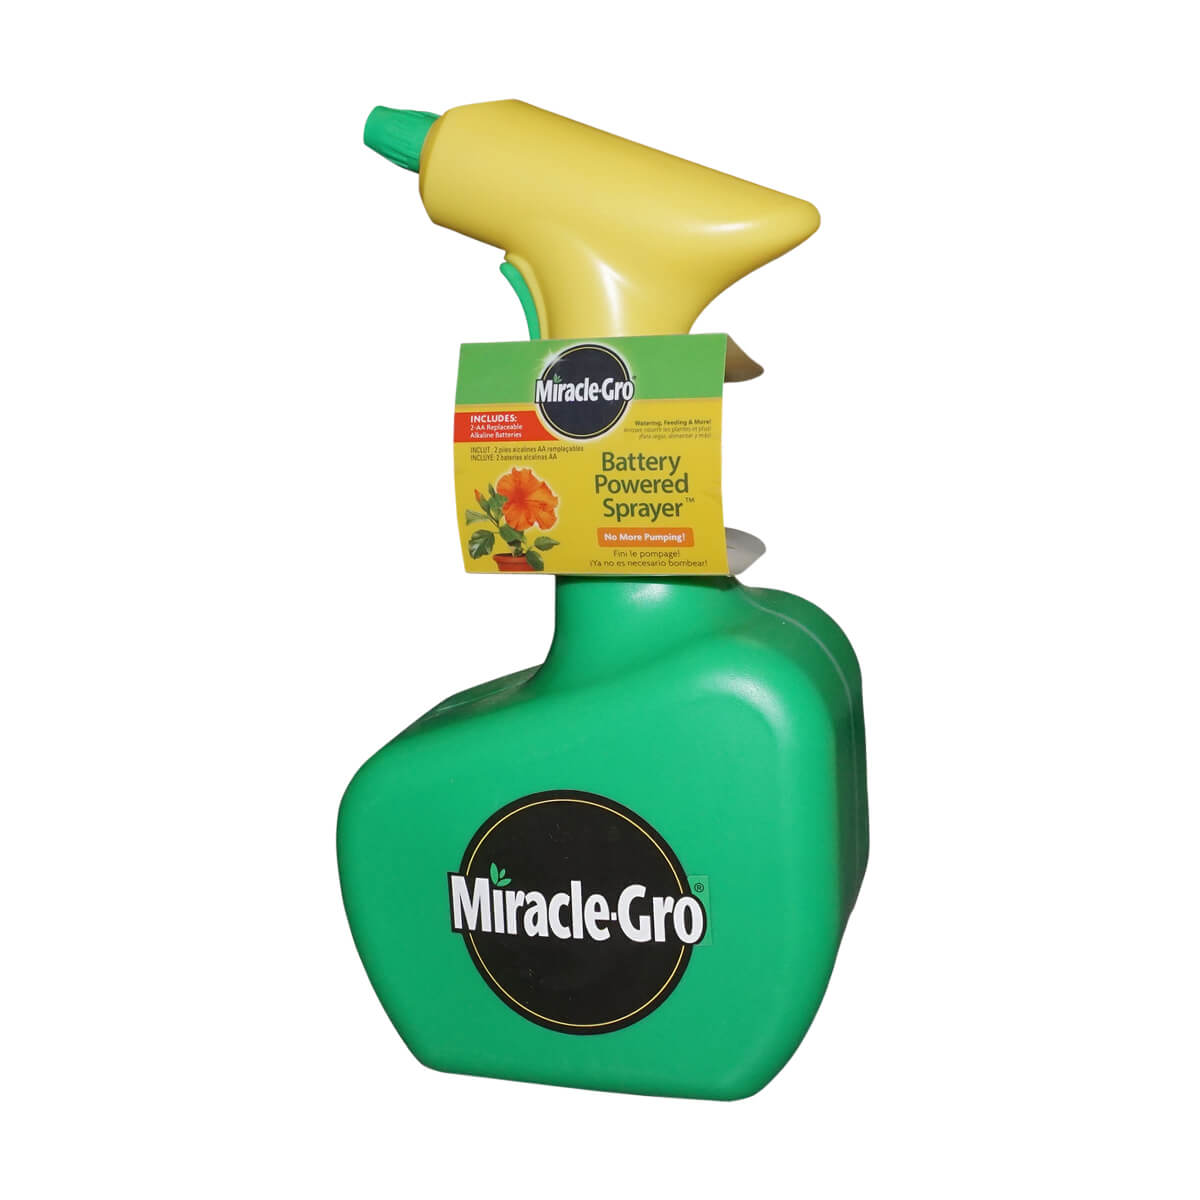 Battery Operated Miracle-Gro Sprayer